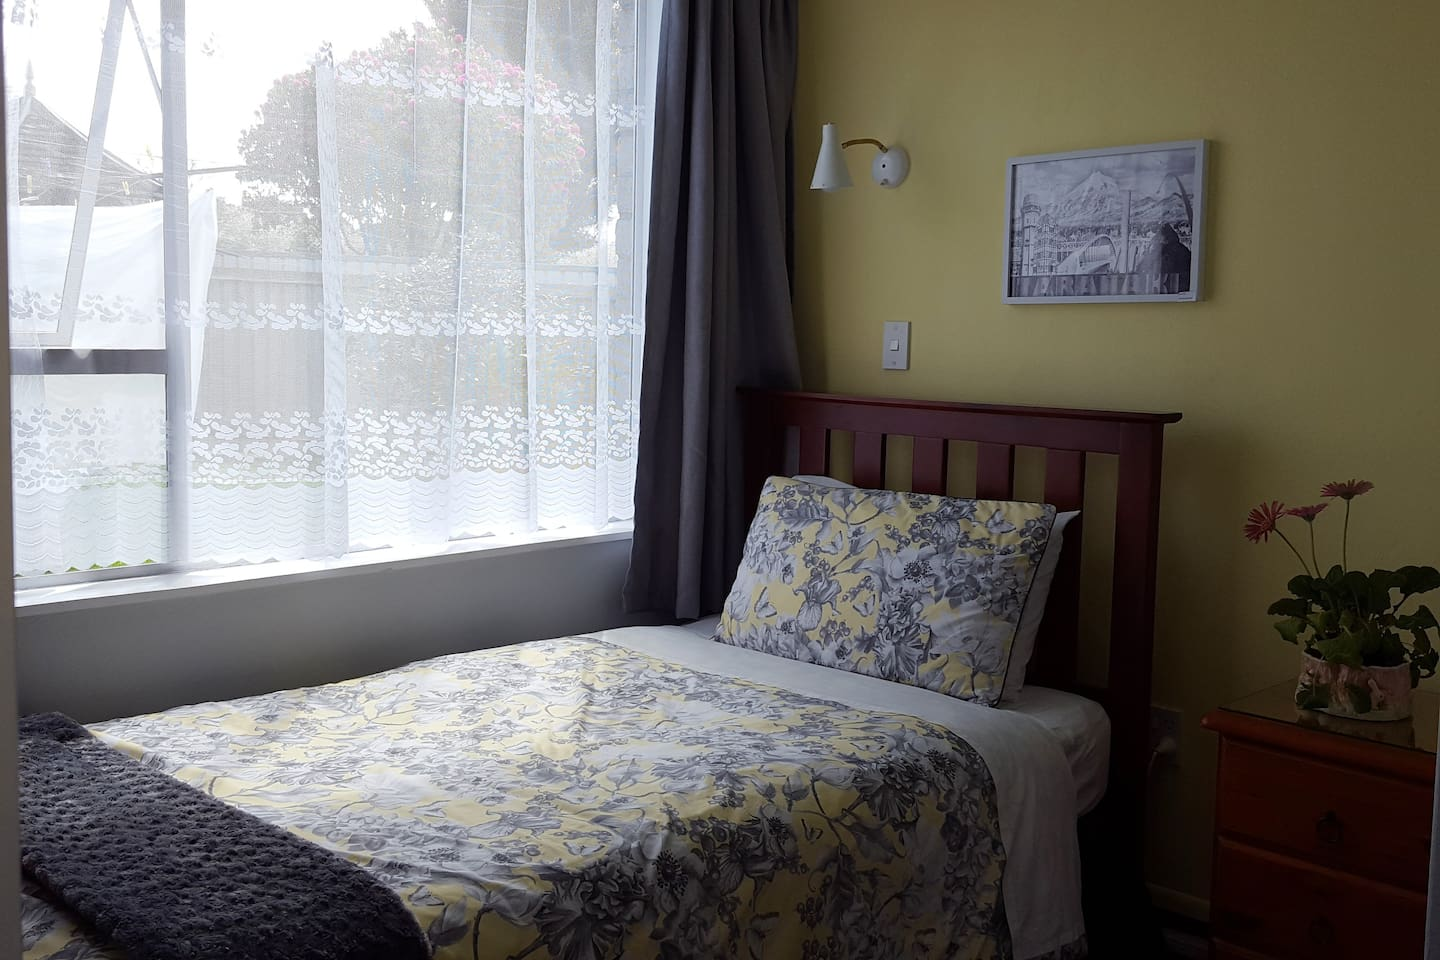 Room 1 has a vanity, TV, wardrobe and a view to the vege gardens.